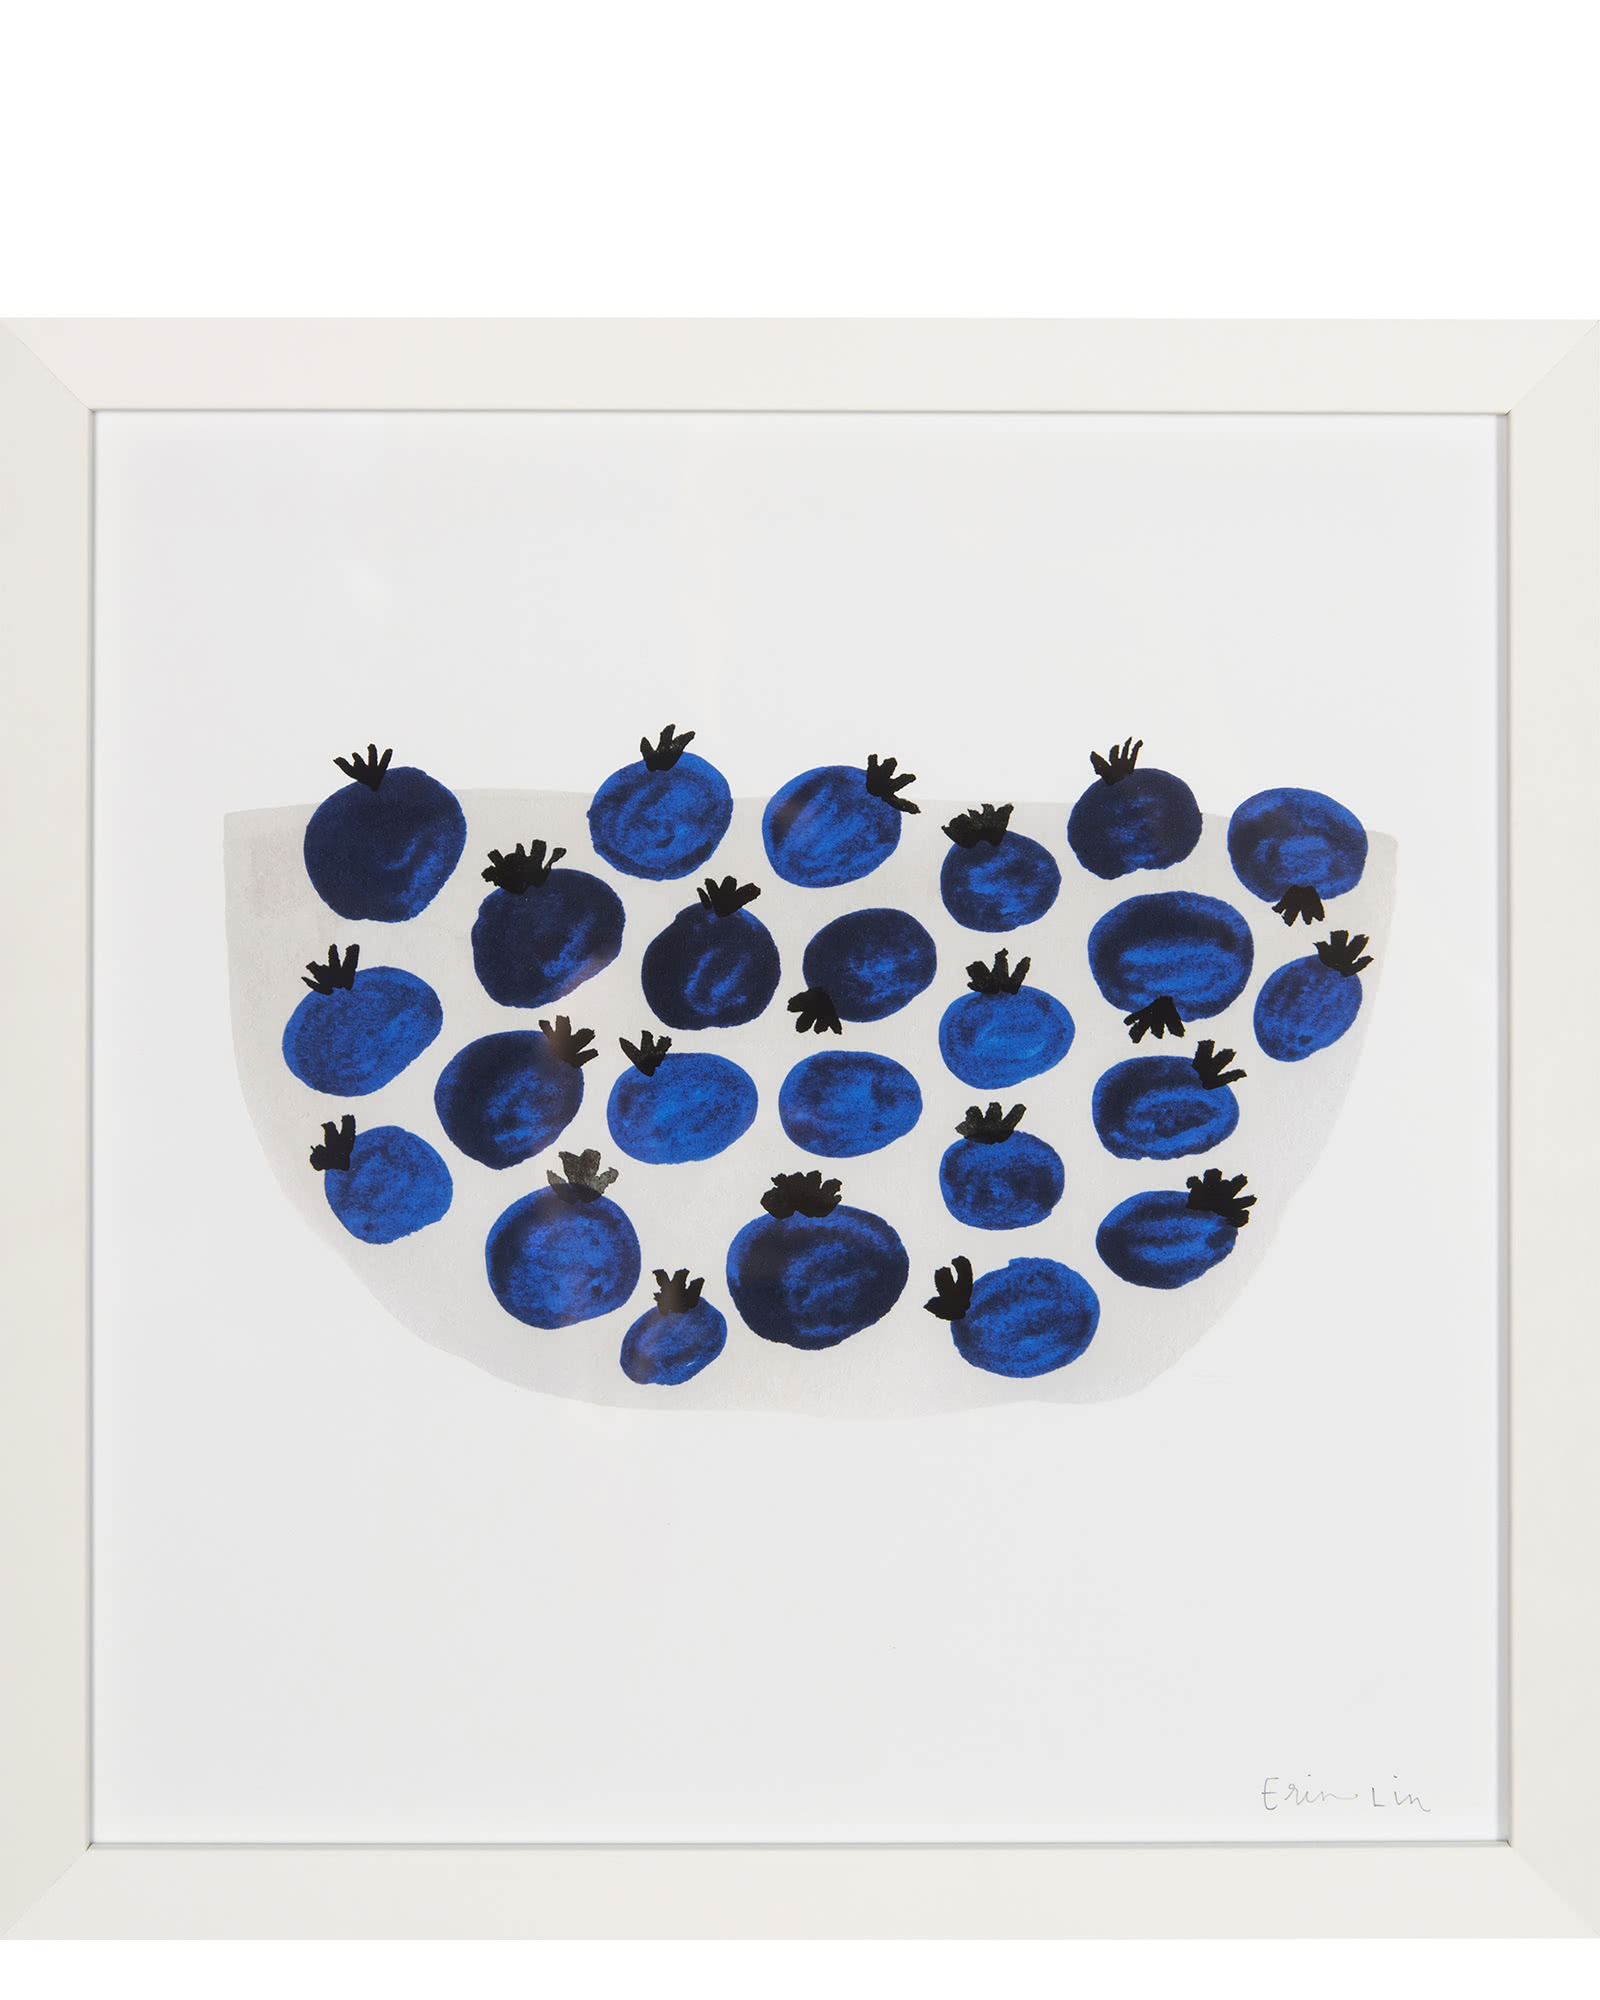 """Blueberry Bowl"" by Erin Lin,"